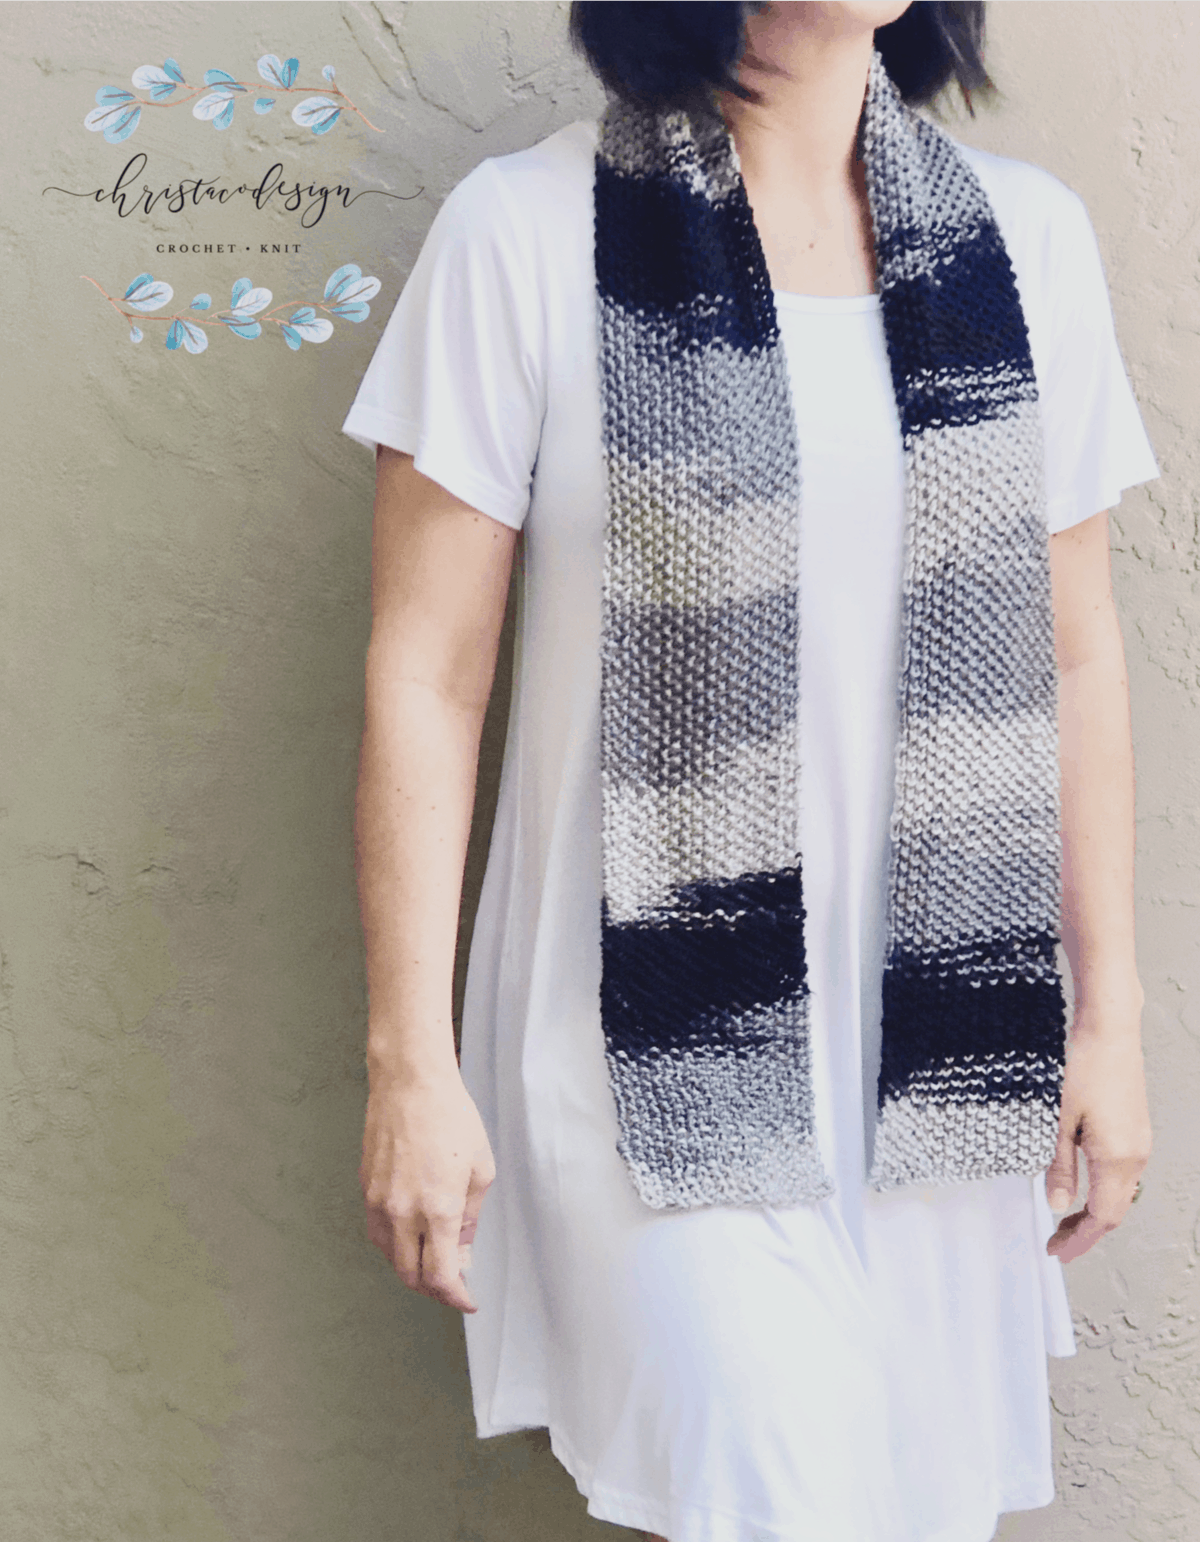 picture of woman in white wearing grey black ombre skinny texture scarf knitting pattern